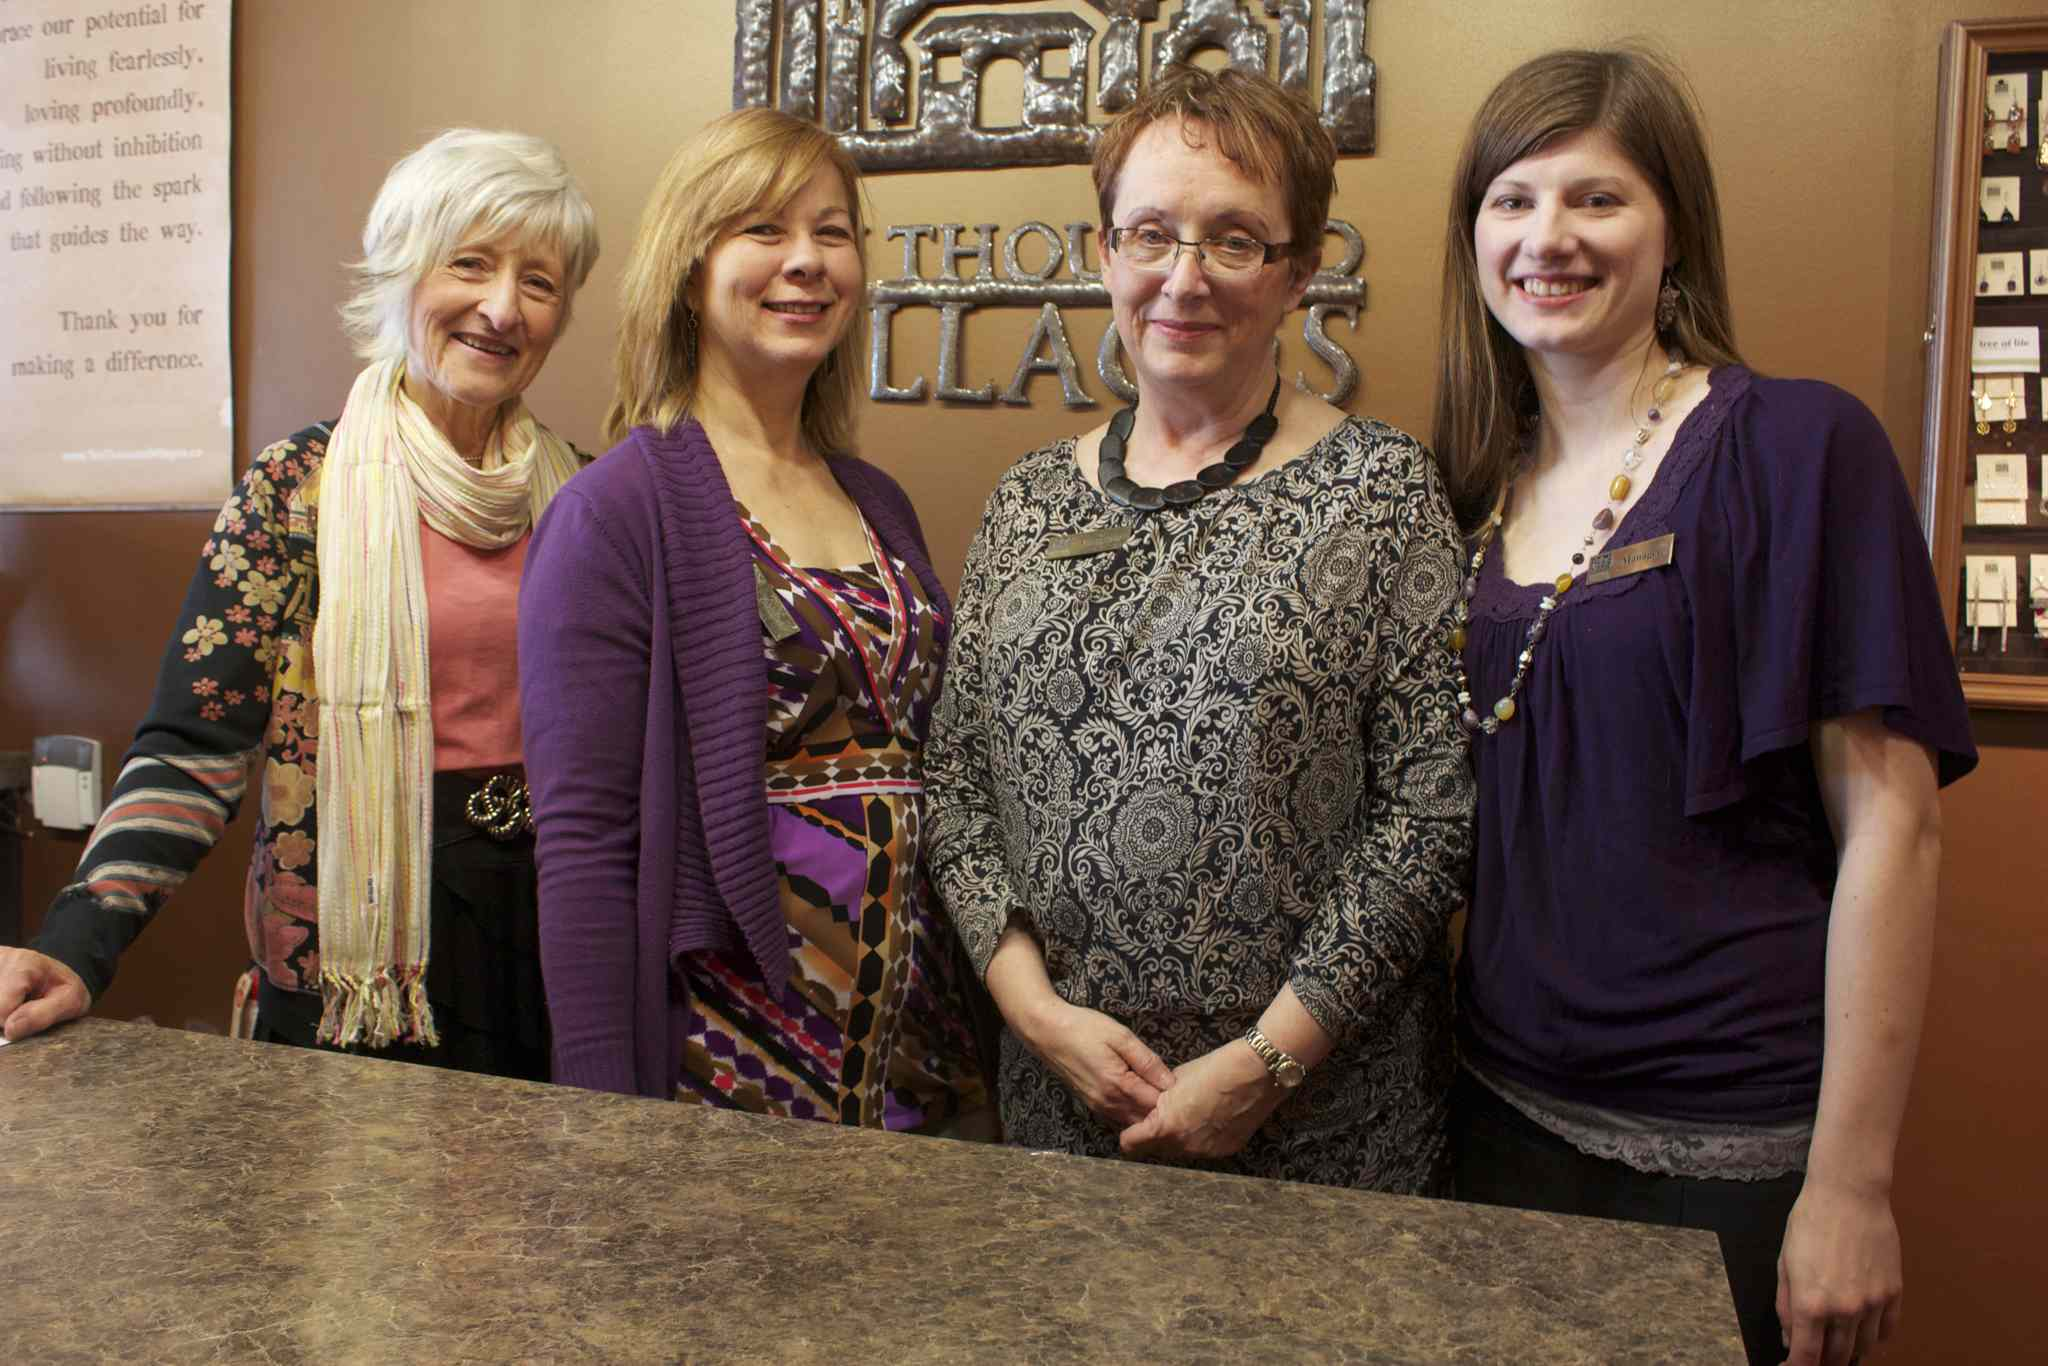 Ten Thousand Villages volunteers Pat Bryski, Susie Slobodian, and Maureen Cowling are shown with store manager Jessica Schmidt.